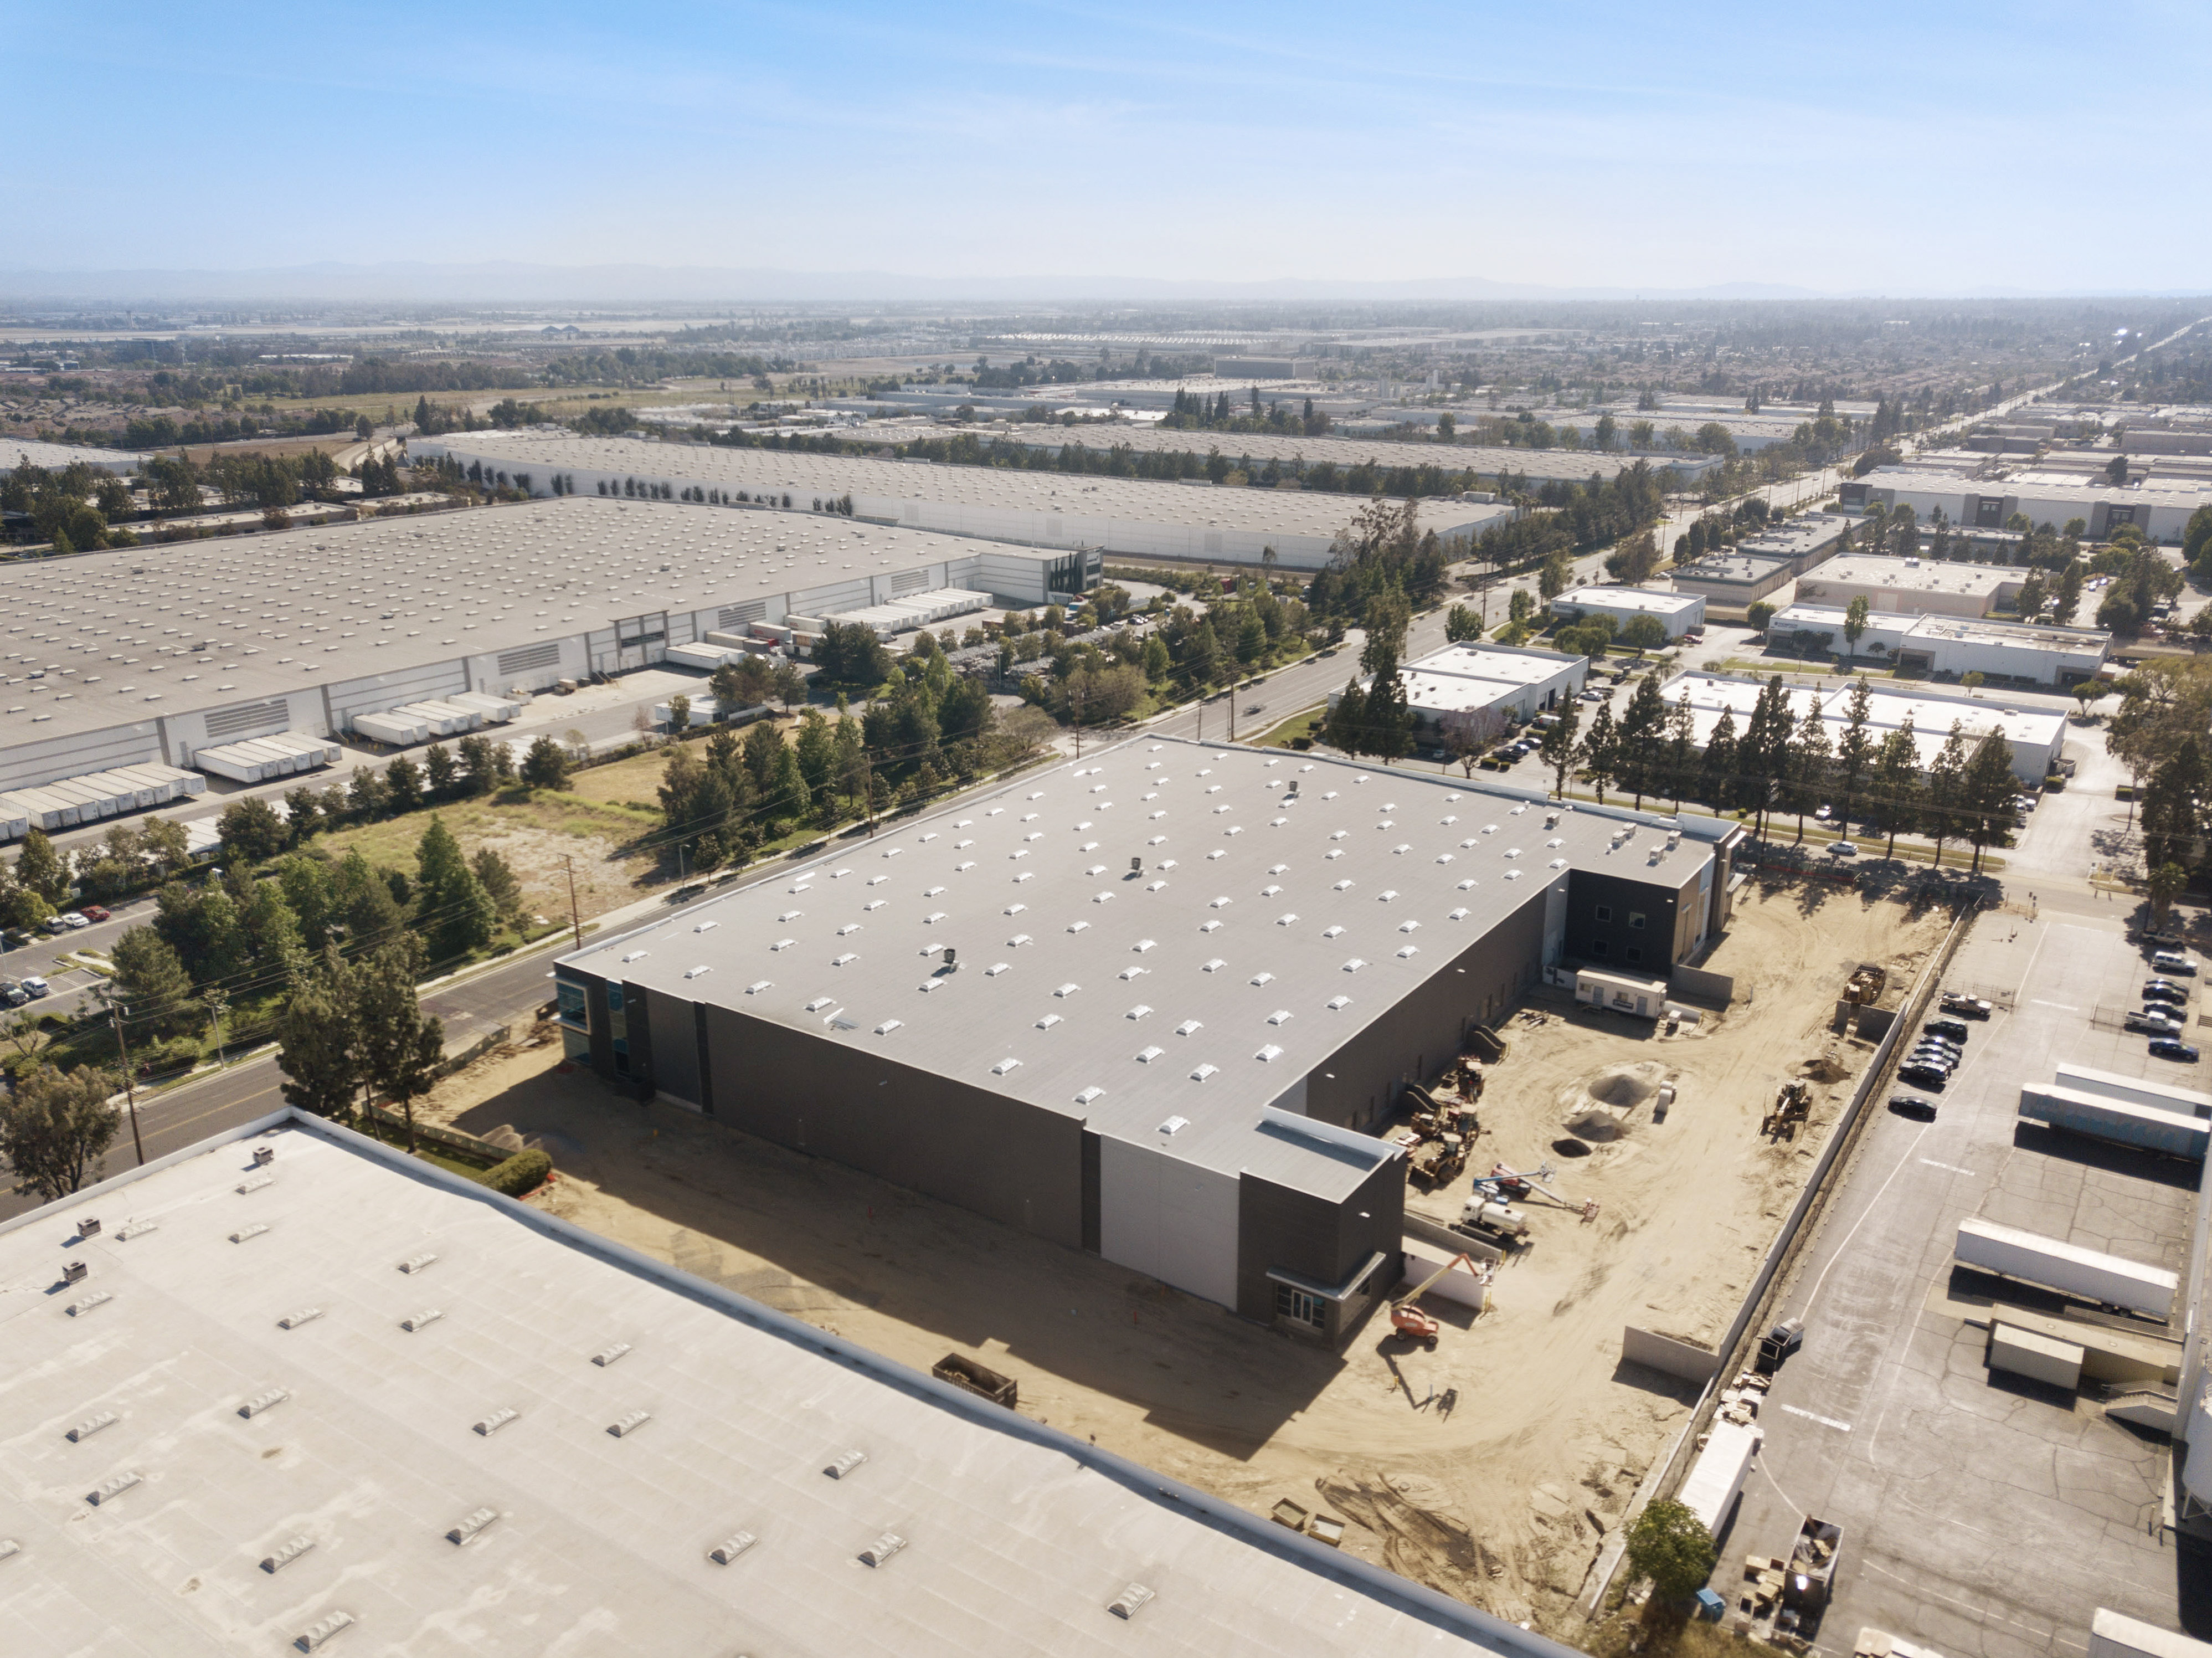 drone photography of truck court